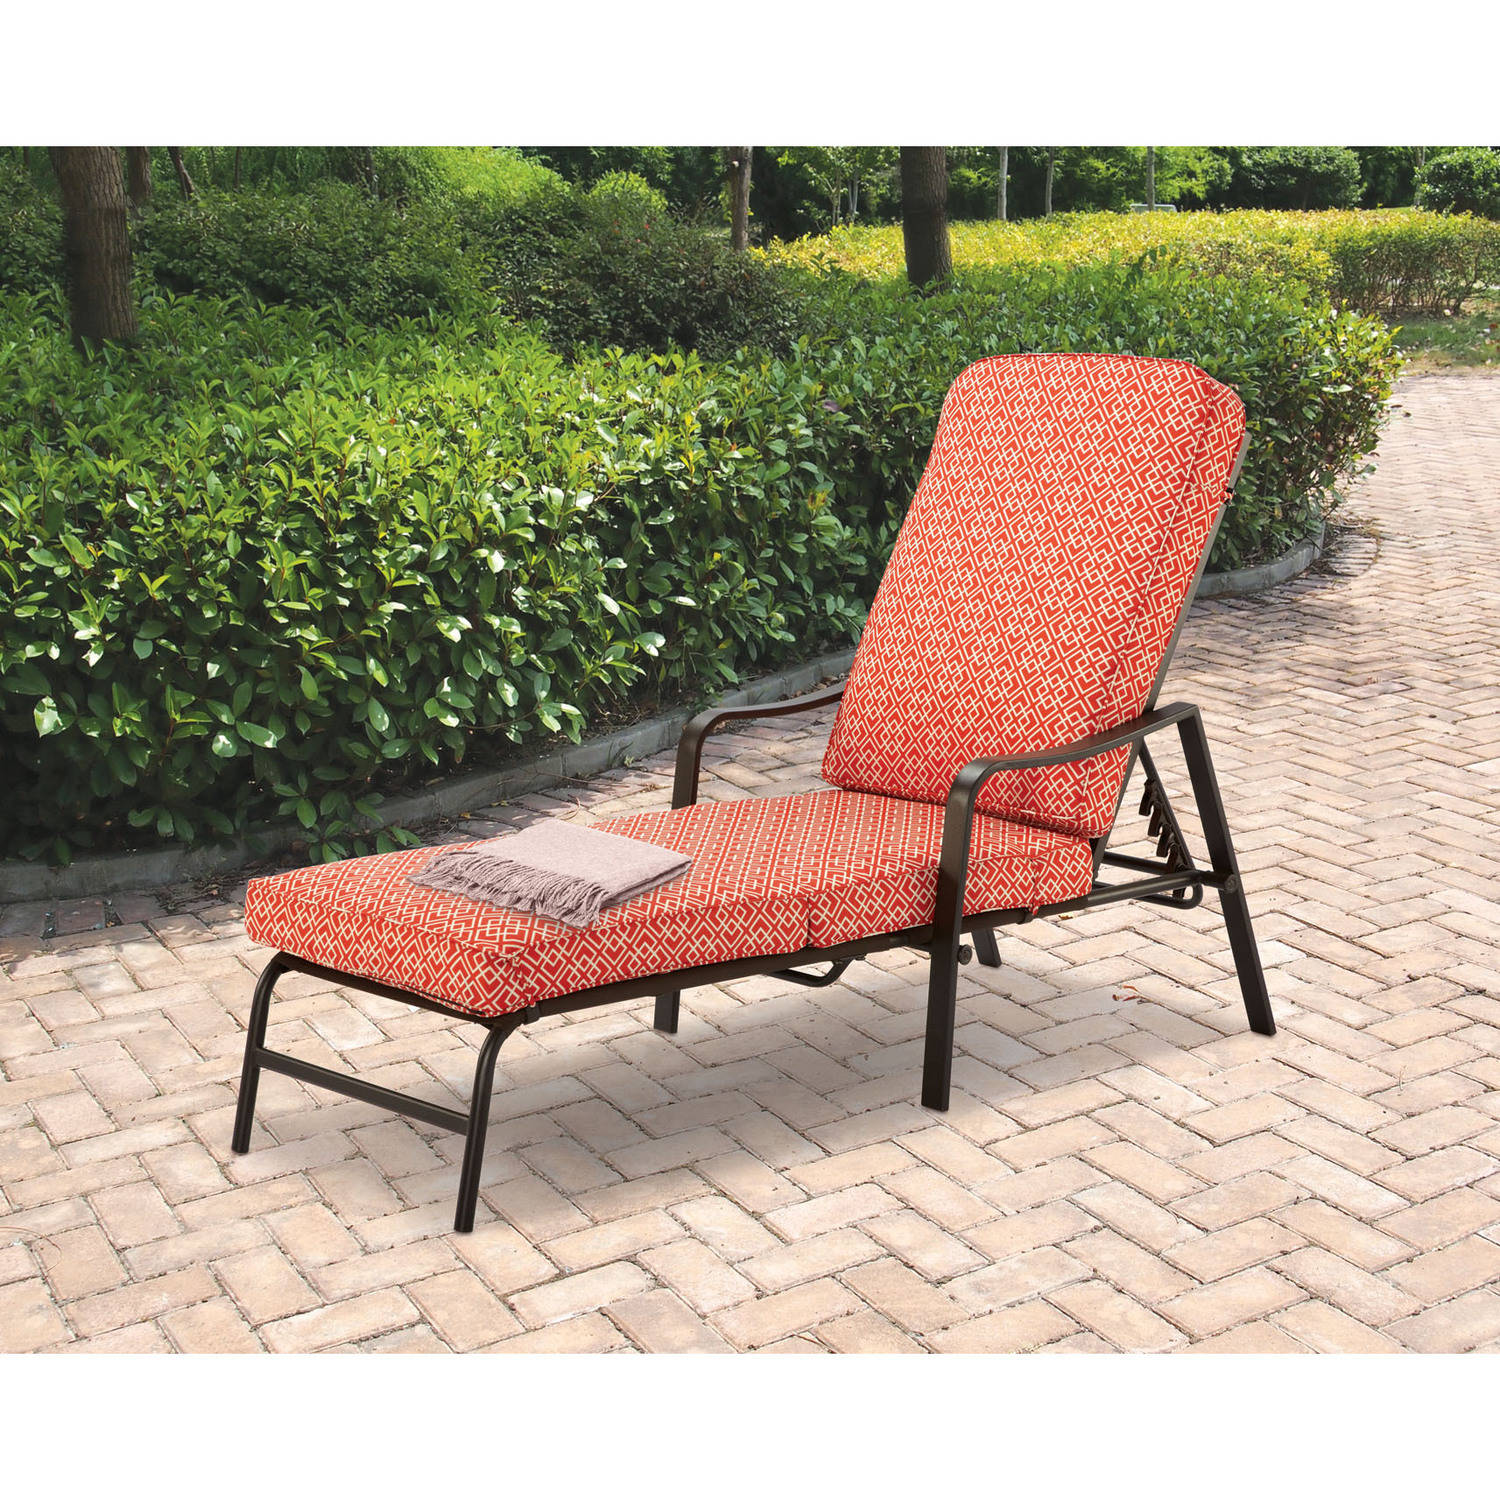 Patio Outdoor Mainstays Outdoor Chaise Lounge Orange Geo Pattern